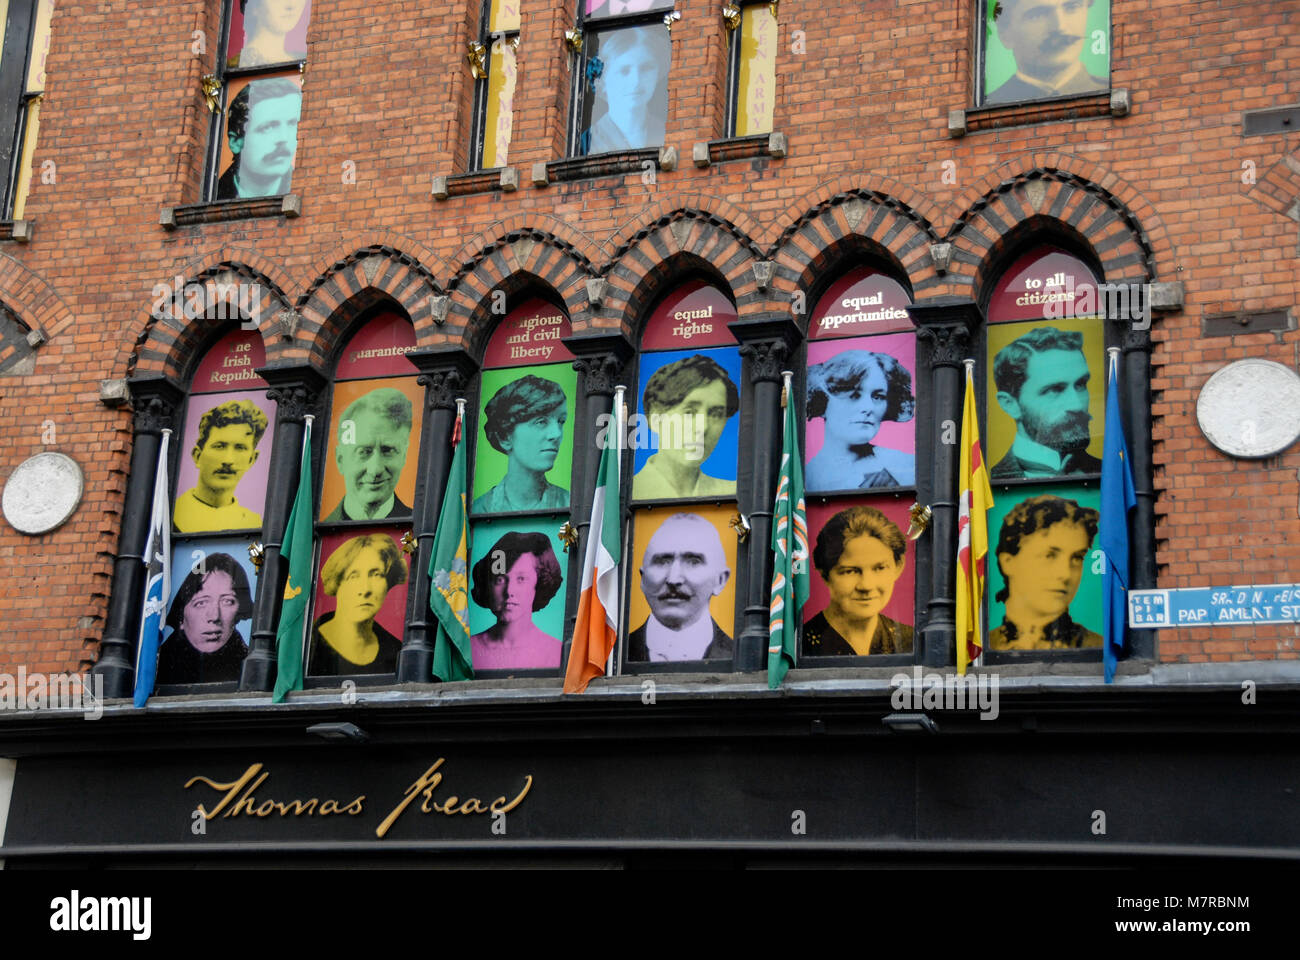 Portraits of members of the 1916 Irish Citizens Army in the windows of a building in Parliament Street, Dublin, - Stock Image